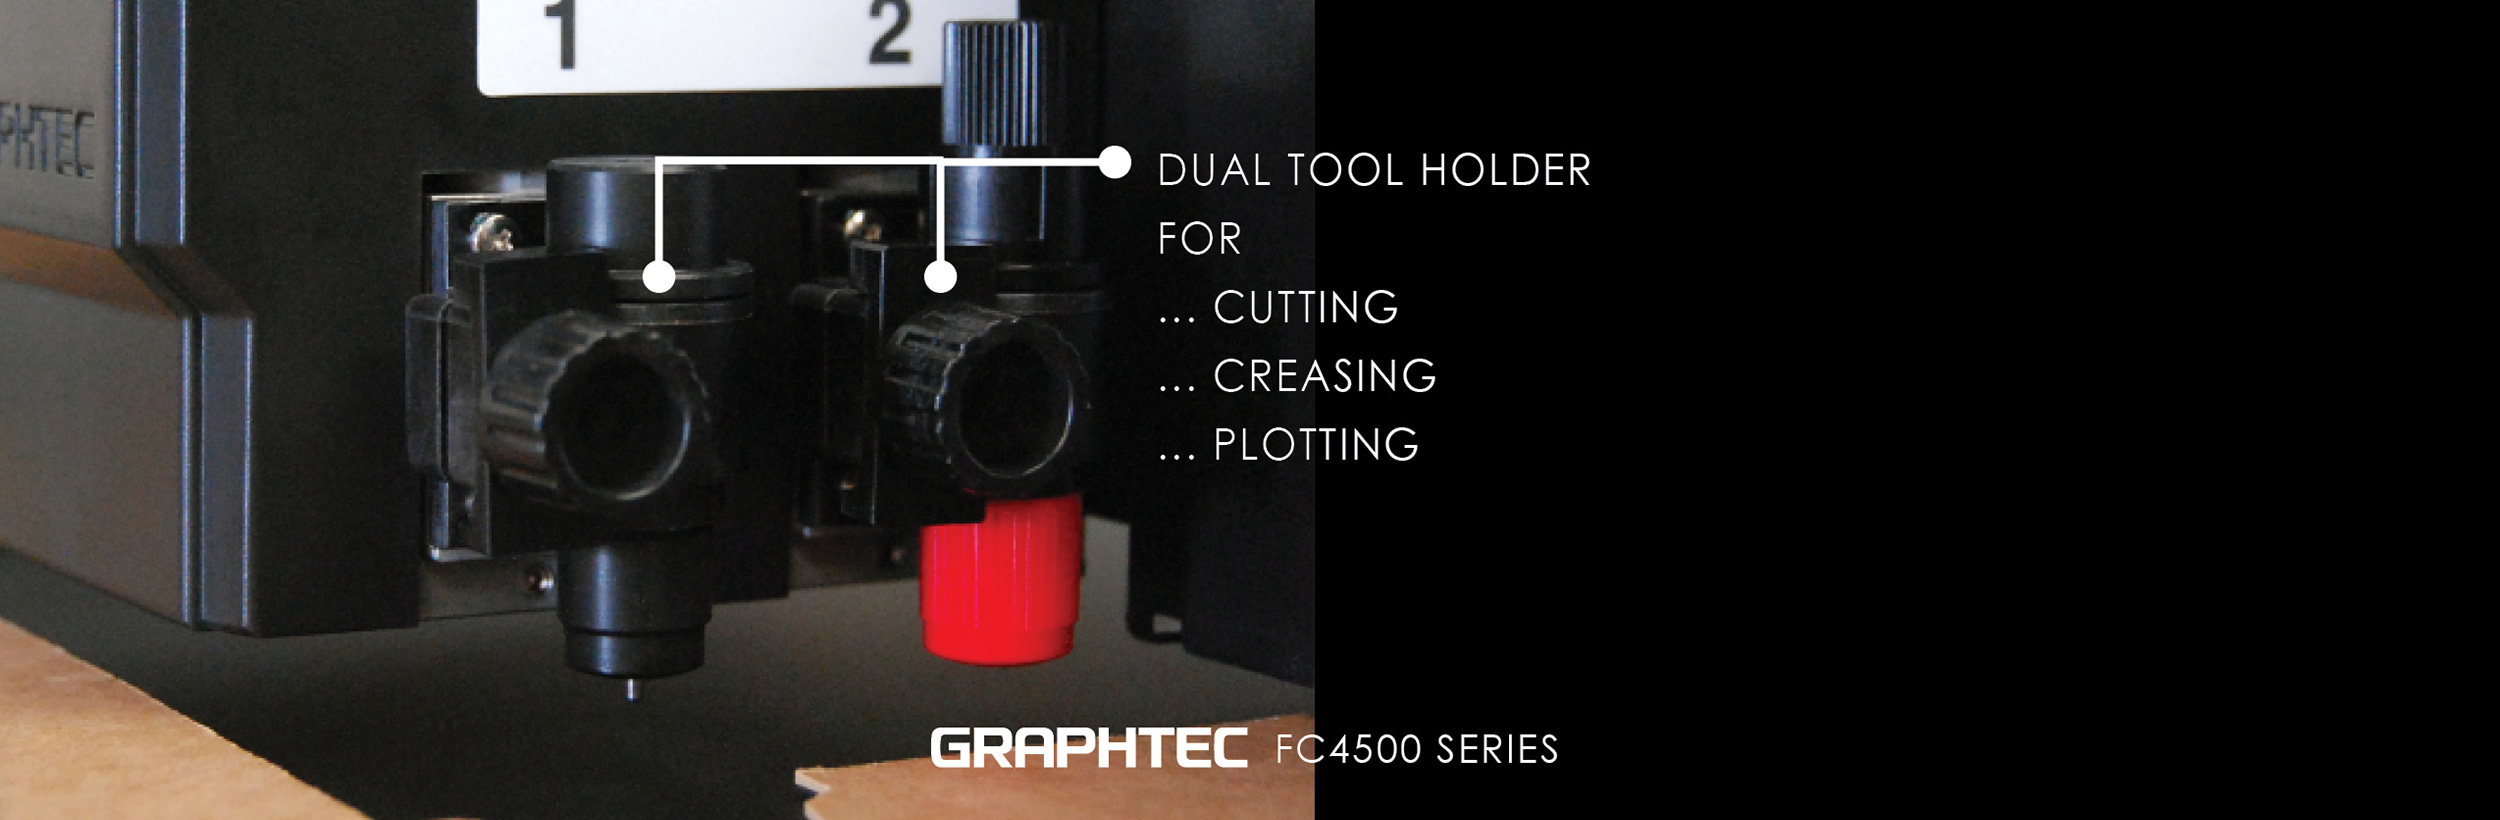 Vinyl+Cutter+Flatbed-Cutter+Package-Cutter-Machine+Graphtec+FC4500-Series-High-Quality-Cutting-and-Creasing-Dual-Tools.jpg